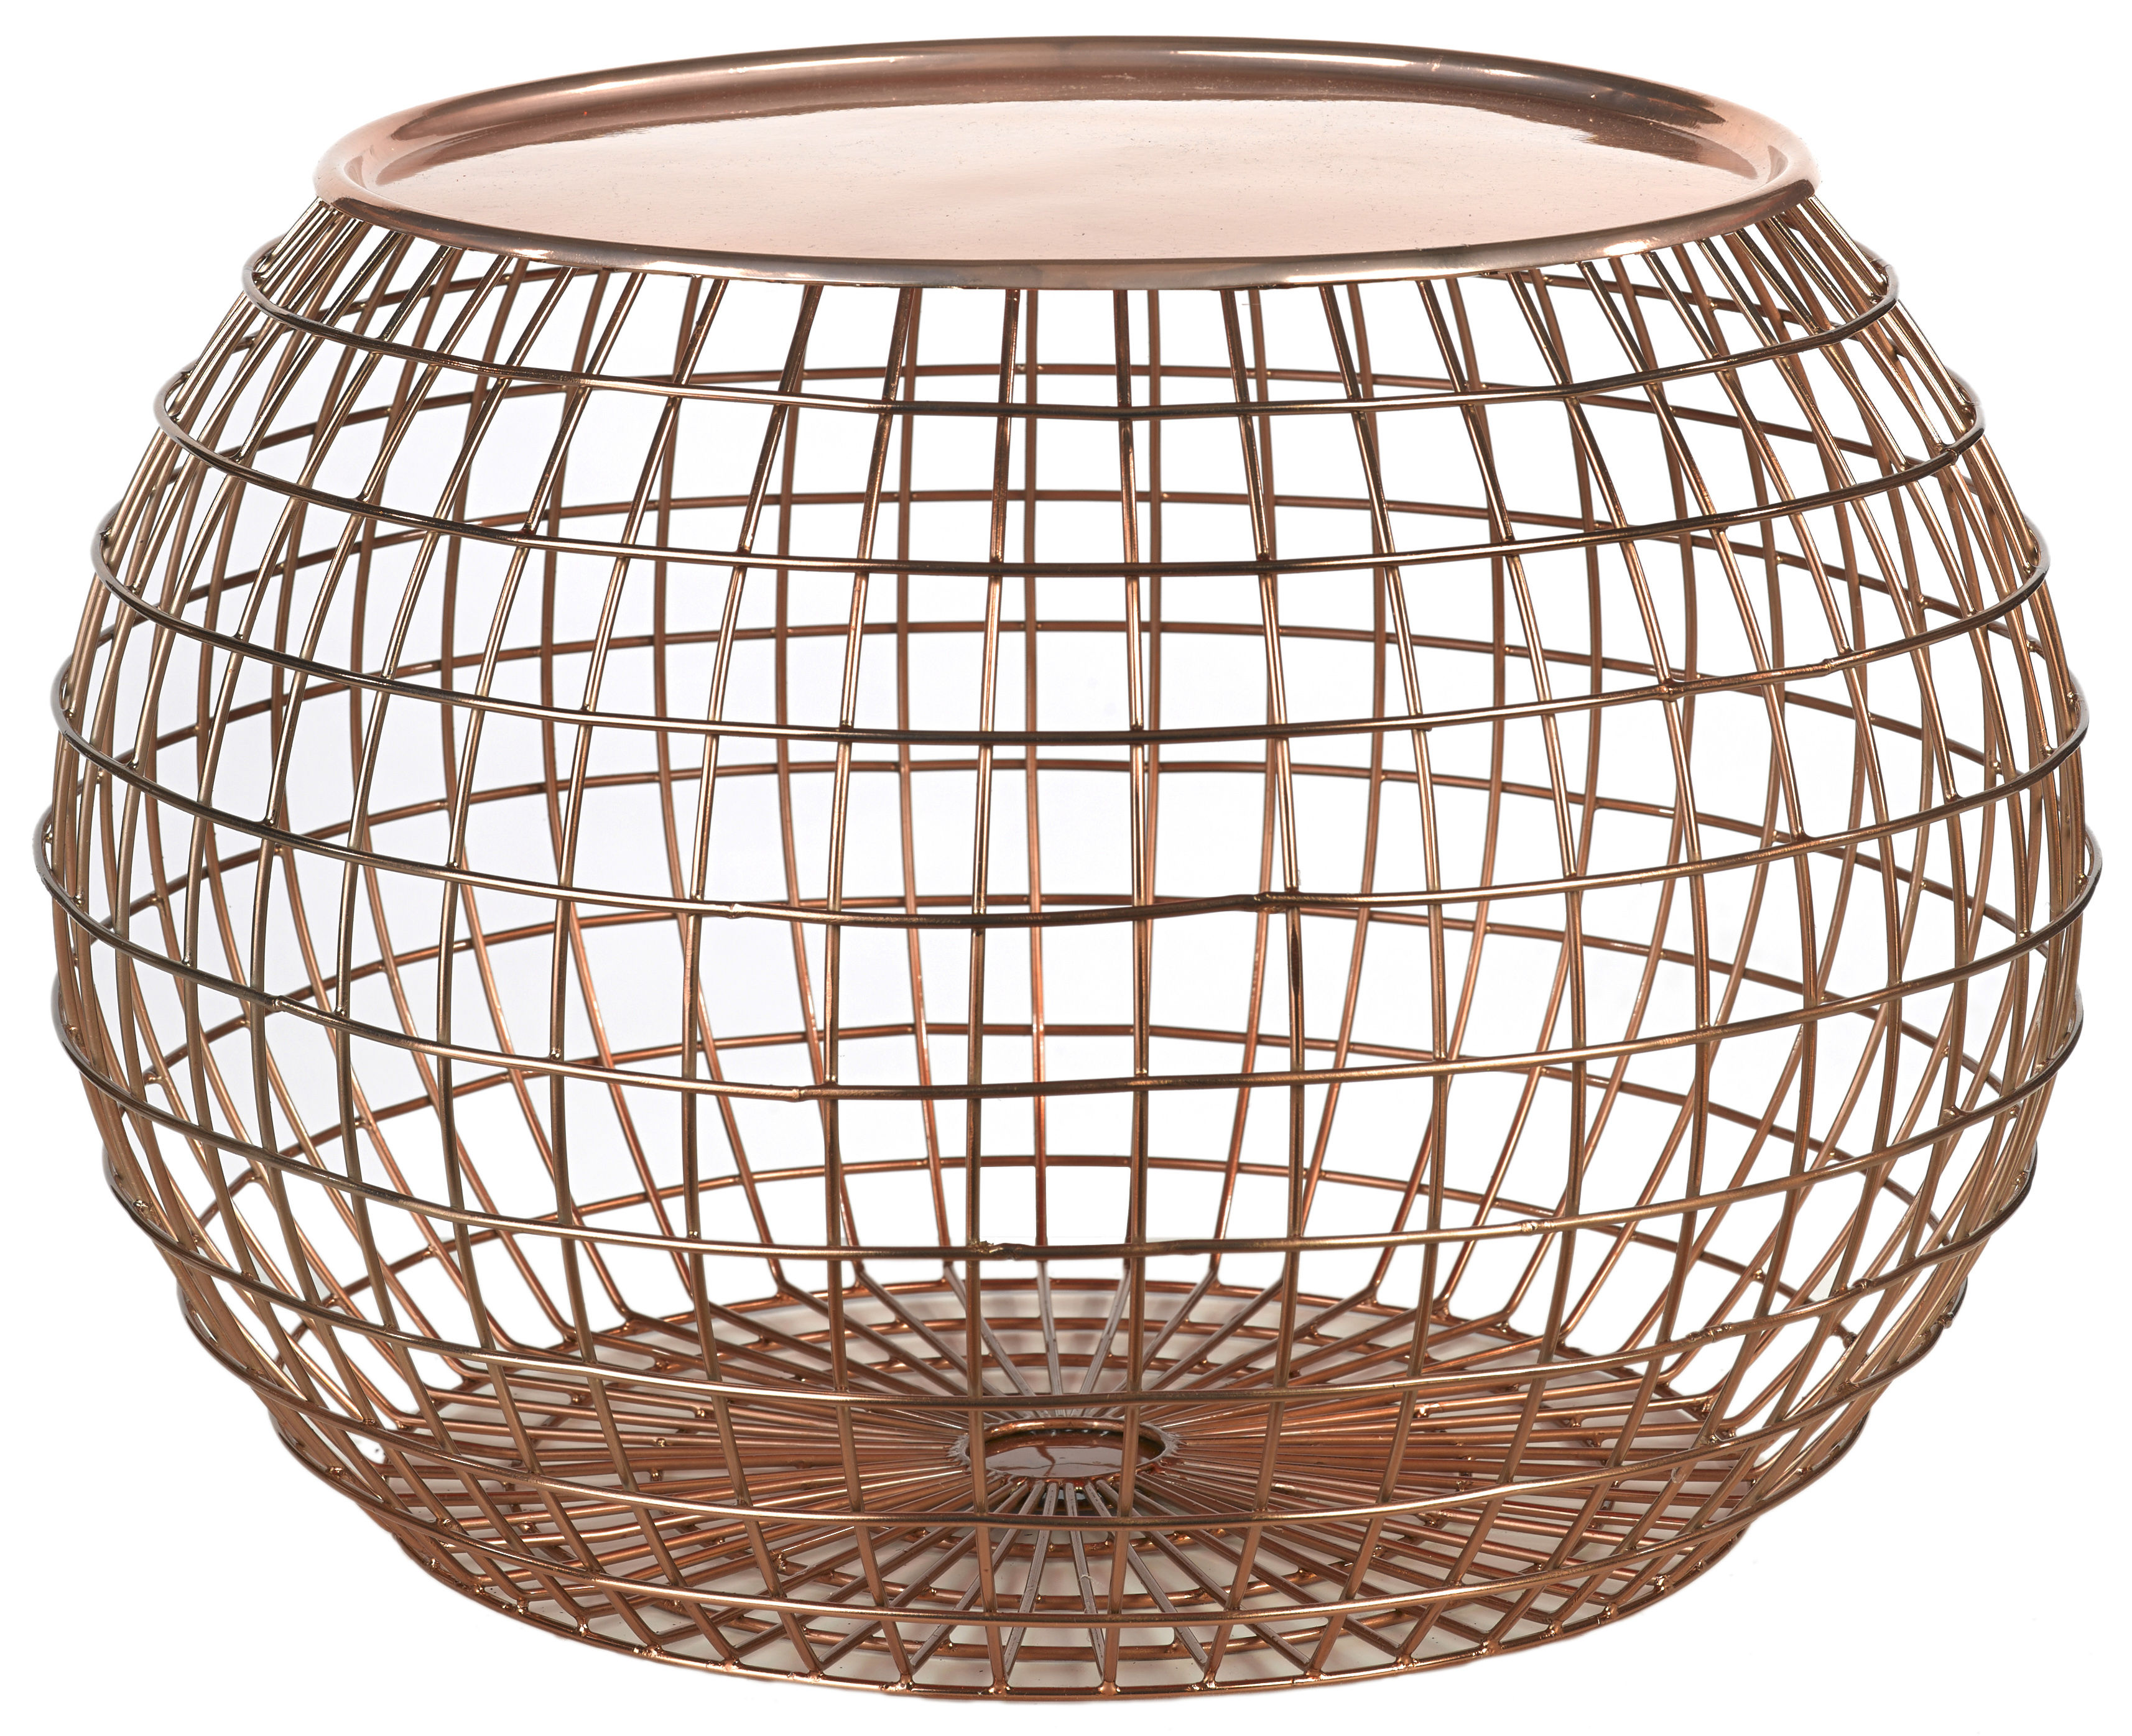 Furniture - Coffee Tables - Ball Wire Coffee table - Removable tray - Ø 50 x H 32cm by Pols Potten - Copper - Fil de fer peint, Painted iron